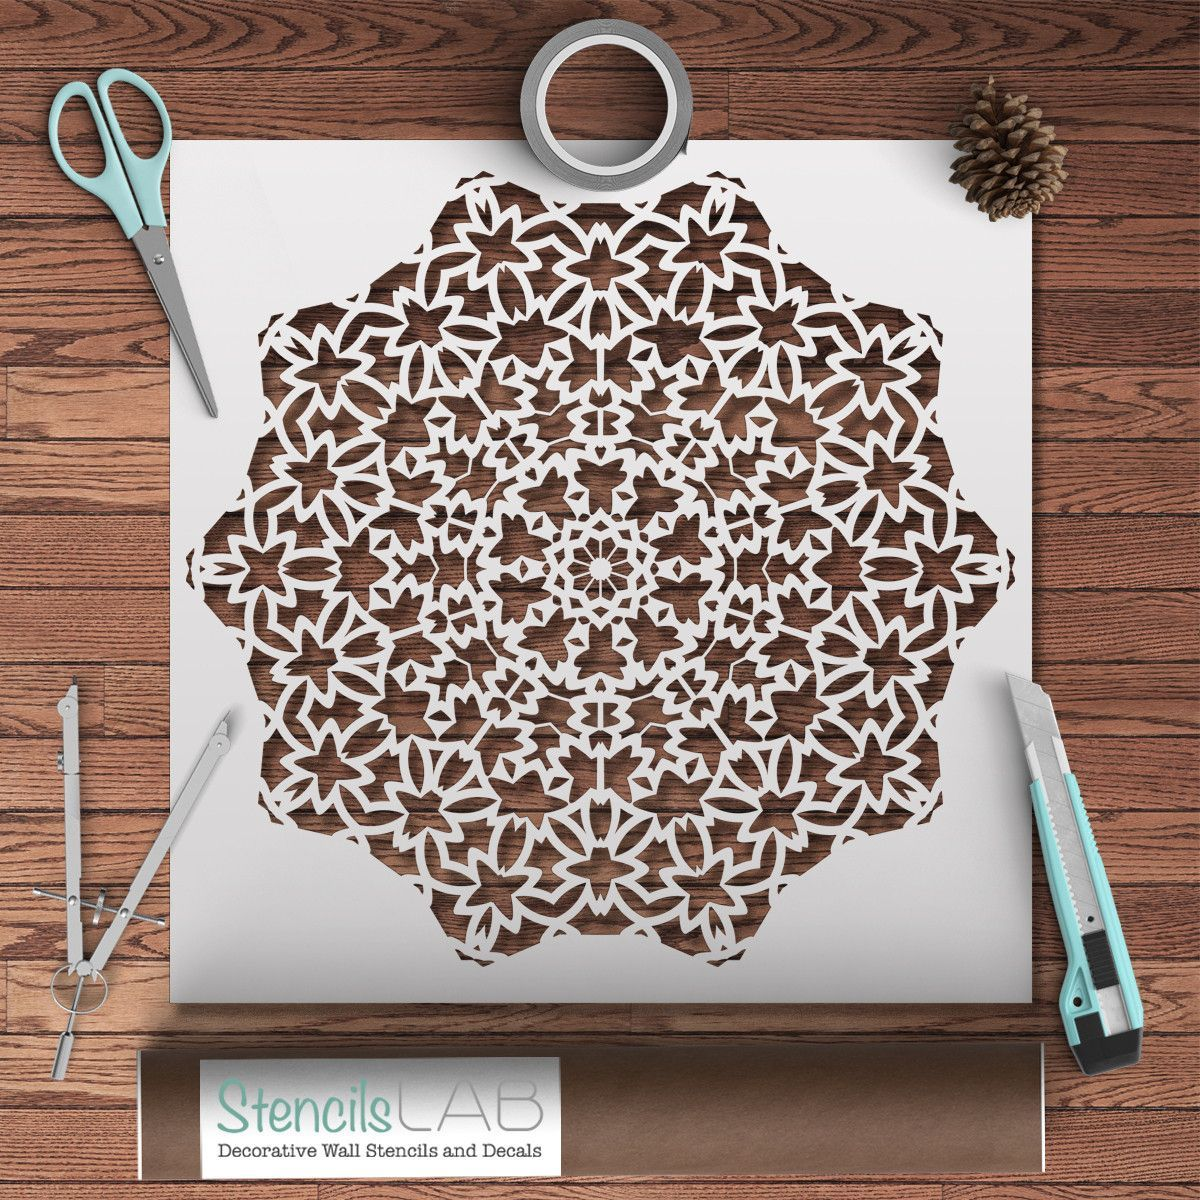 Mandala style stencil for diy decor projects geometric pattern mandala style stencil for diy decor amipublicfo Choice Image